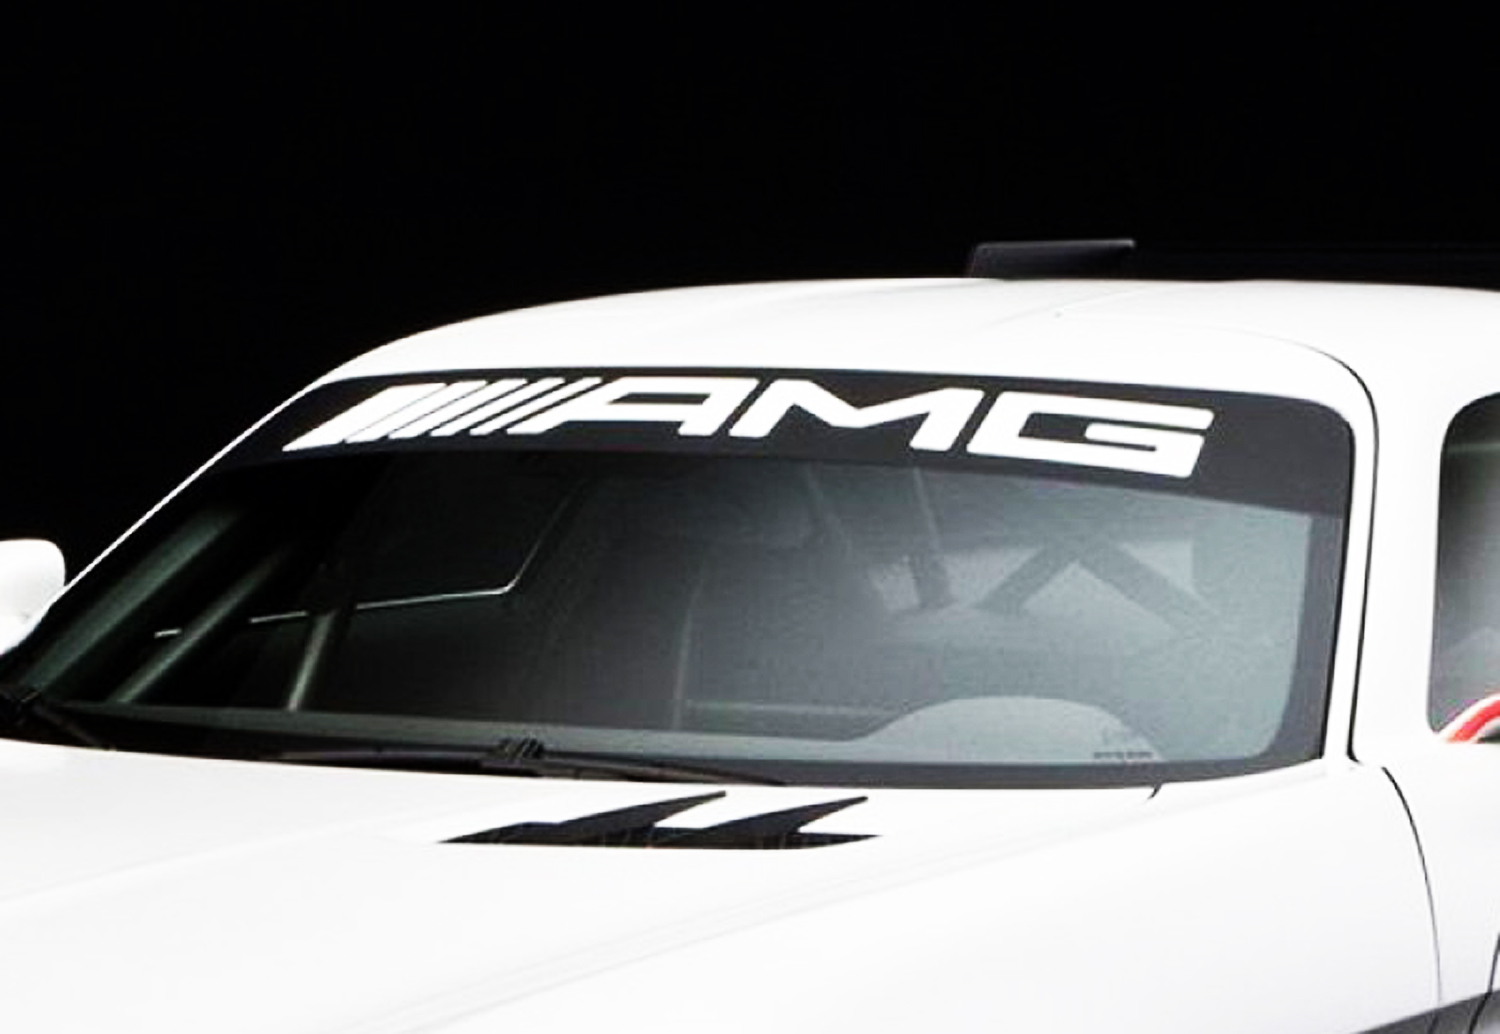 AMG Mercedes Benz Windshield ML350 C250 GL550 decal sticker